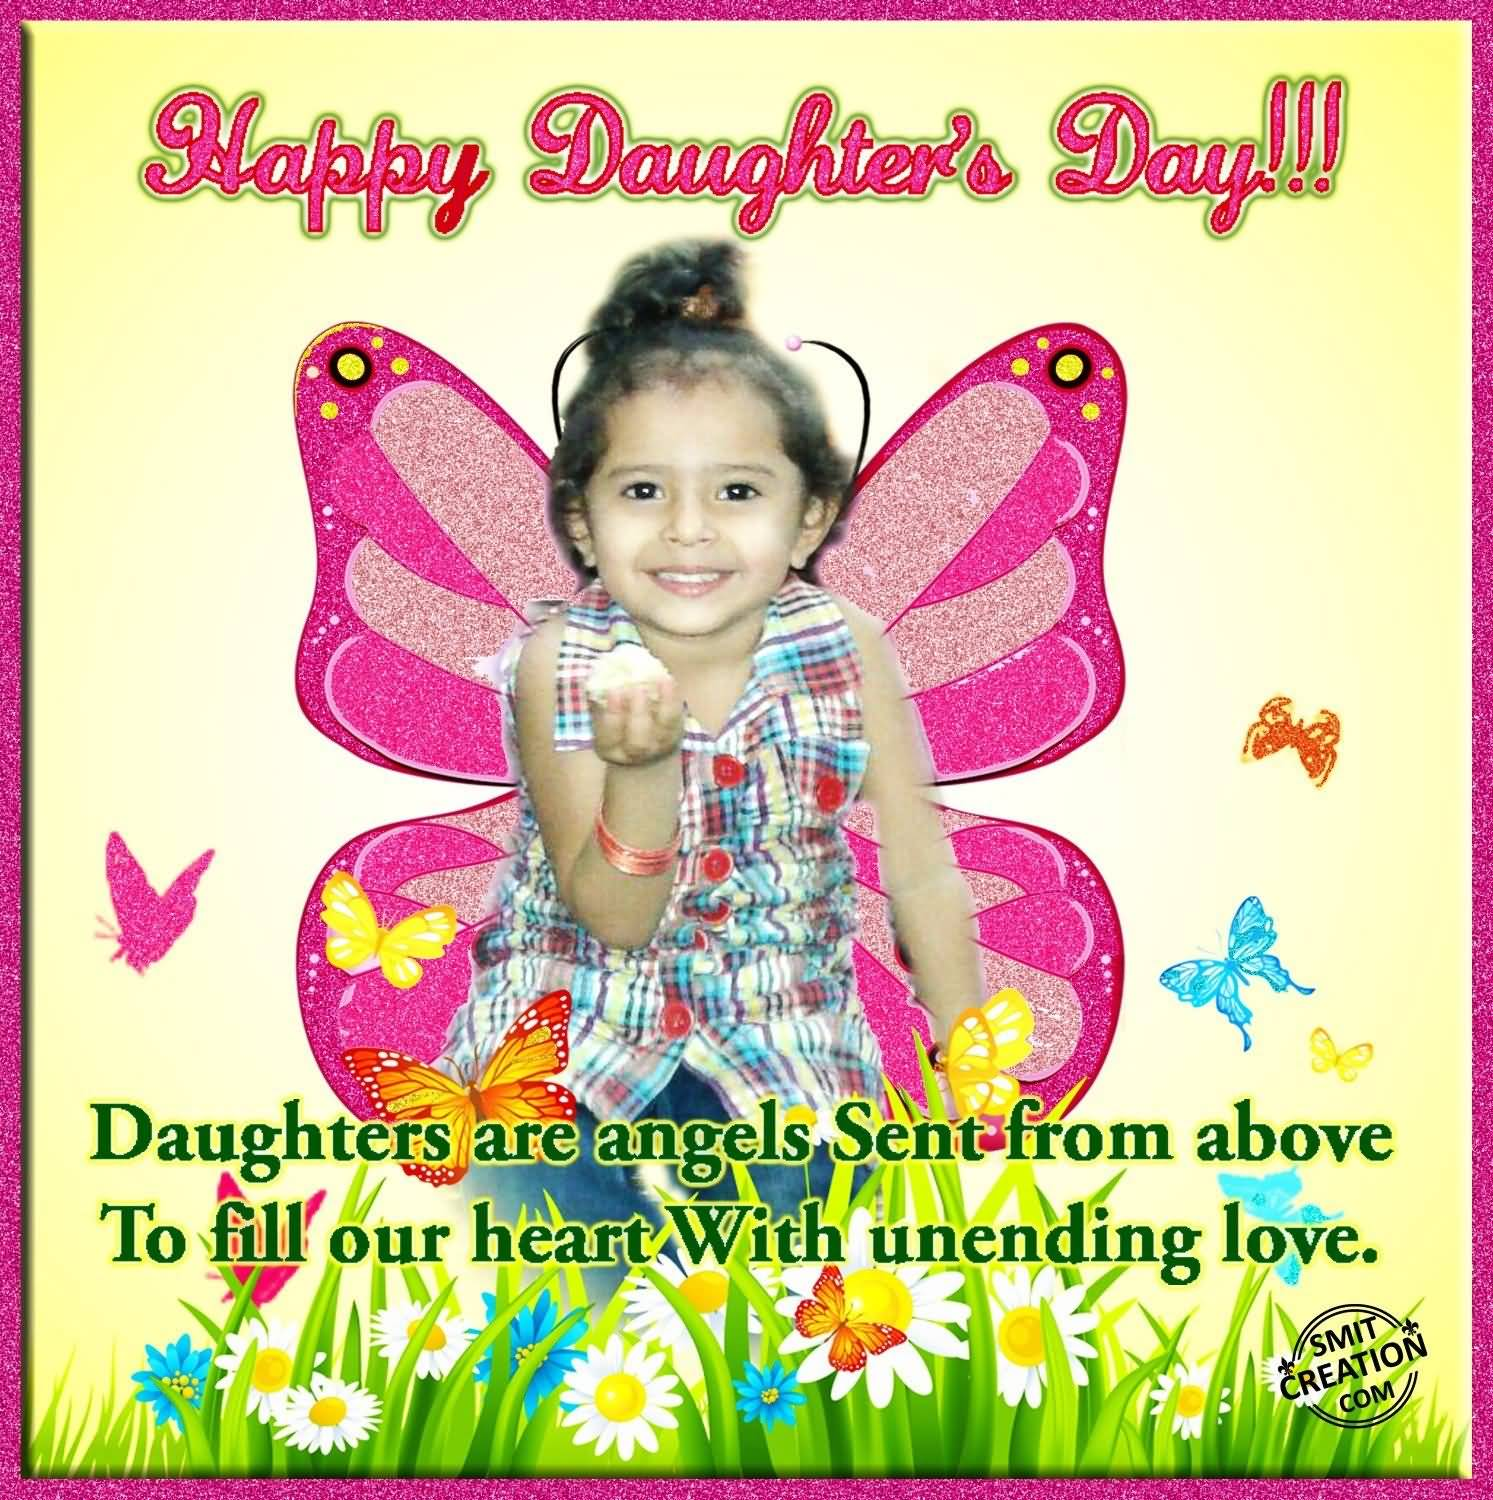 55 most beautiful daughters day wish pictures and images happy daughters day 2016 greetings kristyandbryce Images